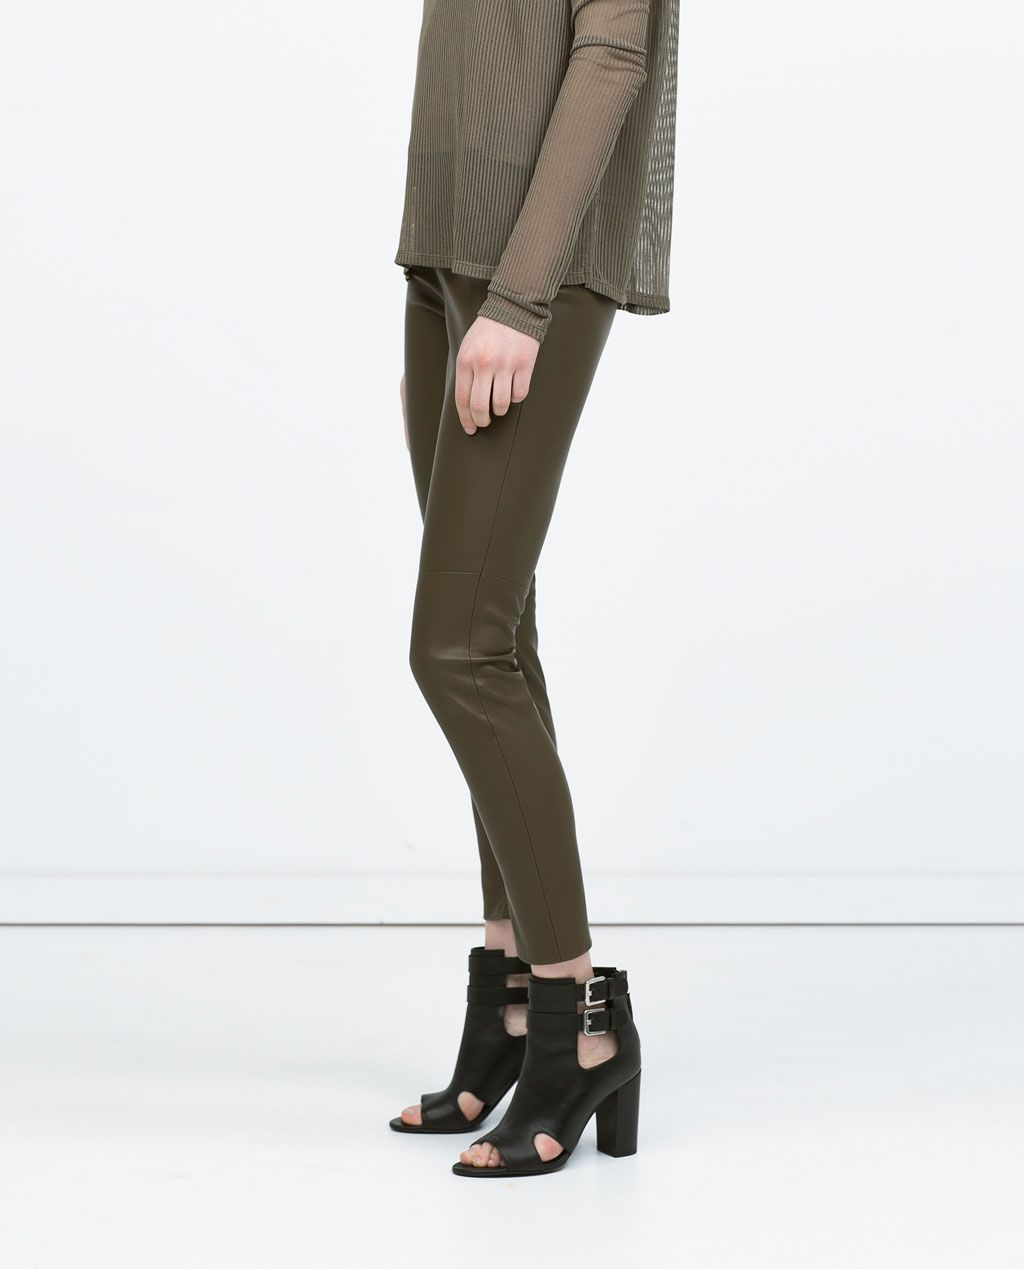 8370f0f7 Image 1 of FAUX LEATHER LEGGINGS WITH SEAM AT THE KNEE from Zara ...